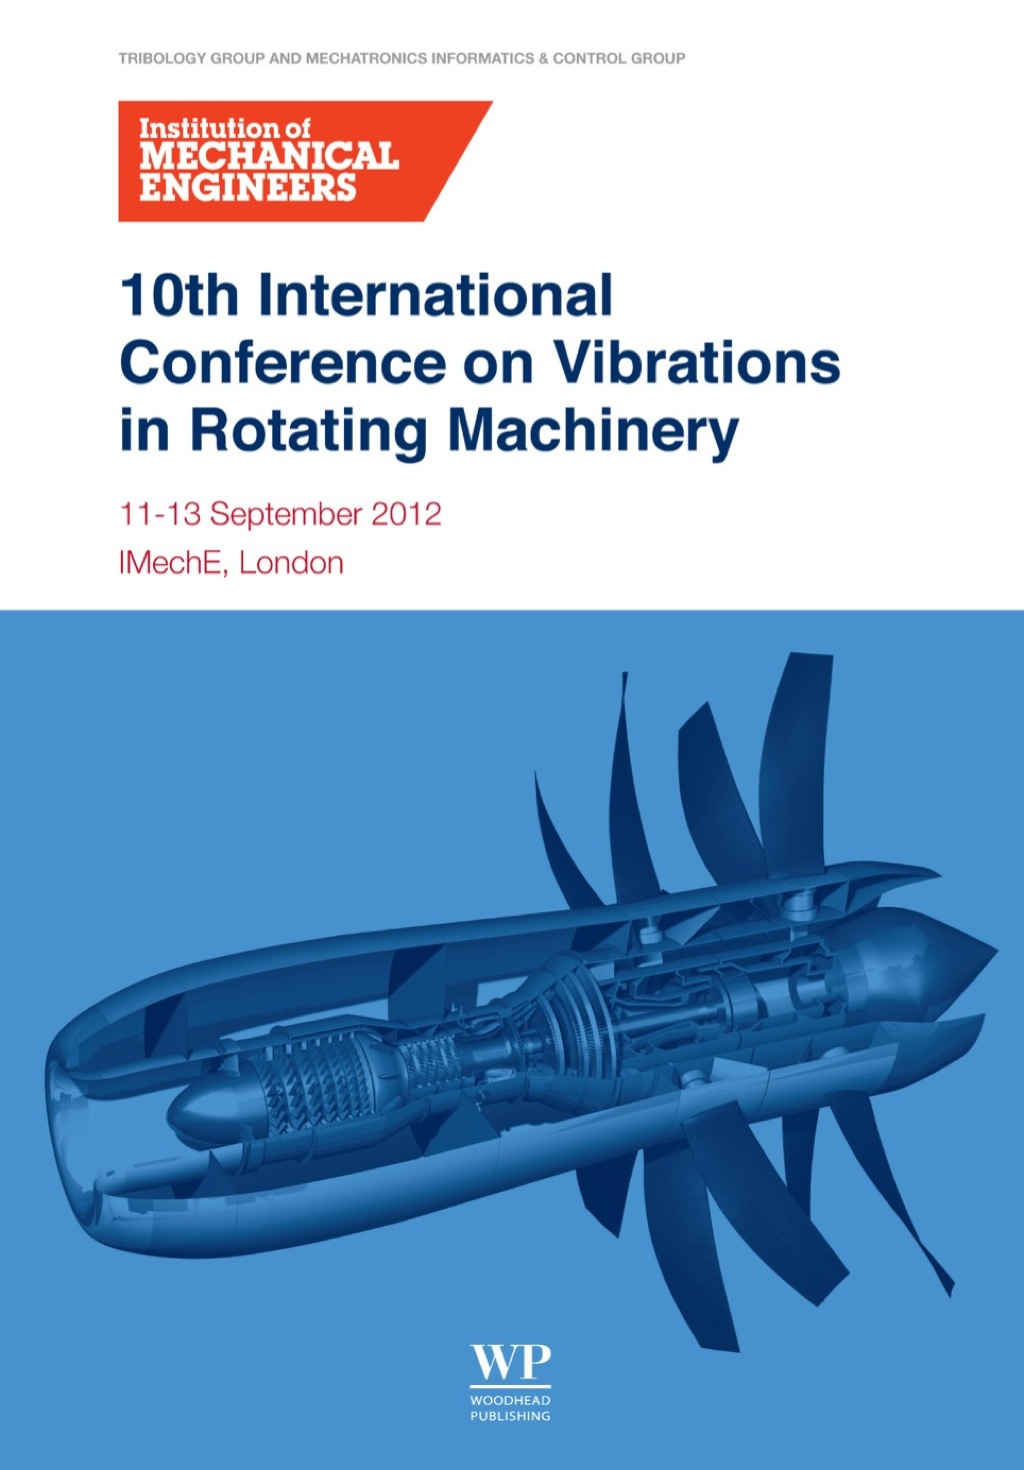 10th International Conference on Vibrations in Rotating Machinery: 11-13 September 2012, Imeche London, Uk (ebook) eBooks